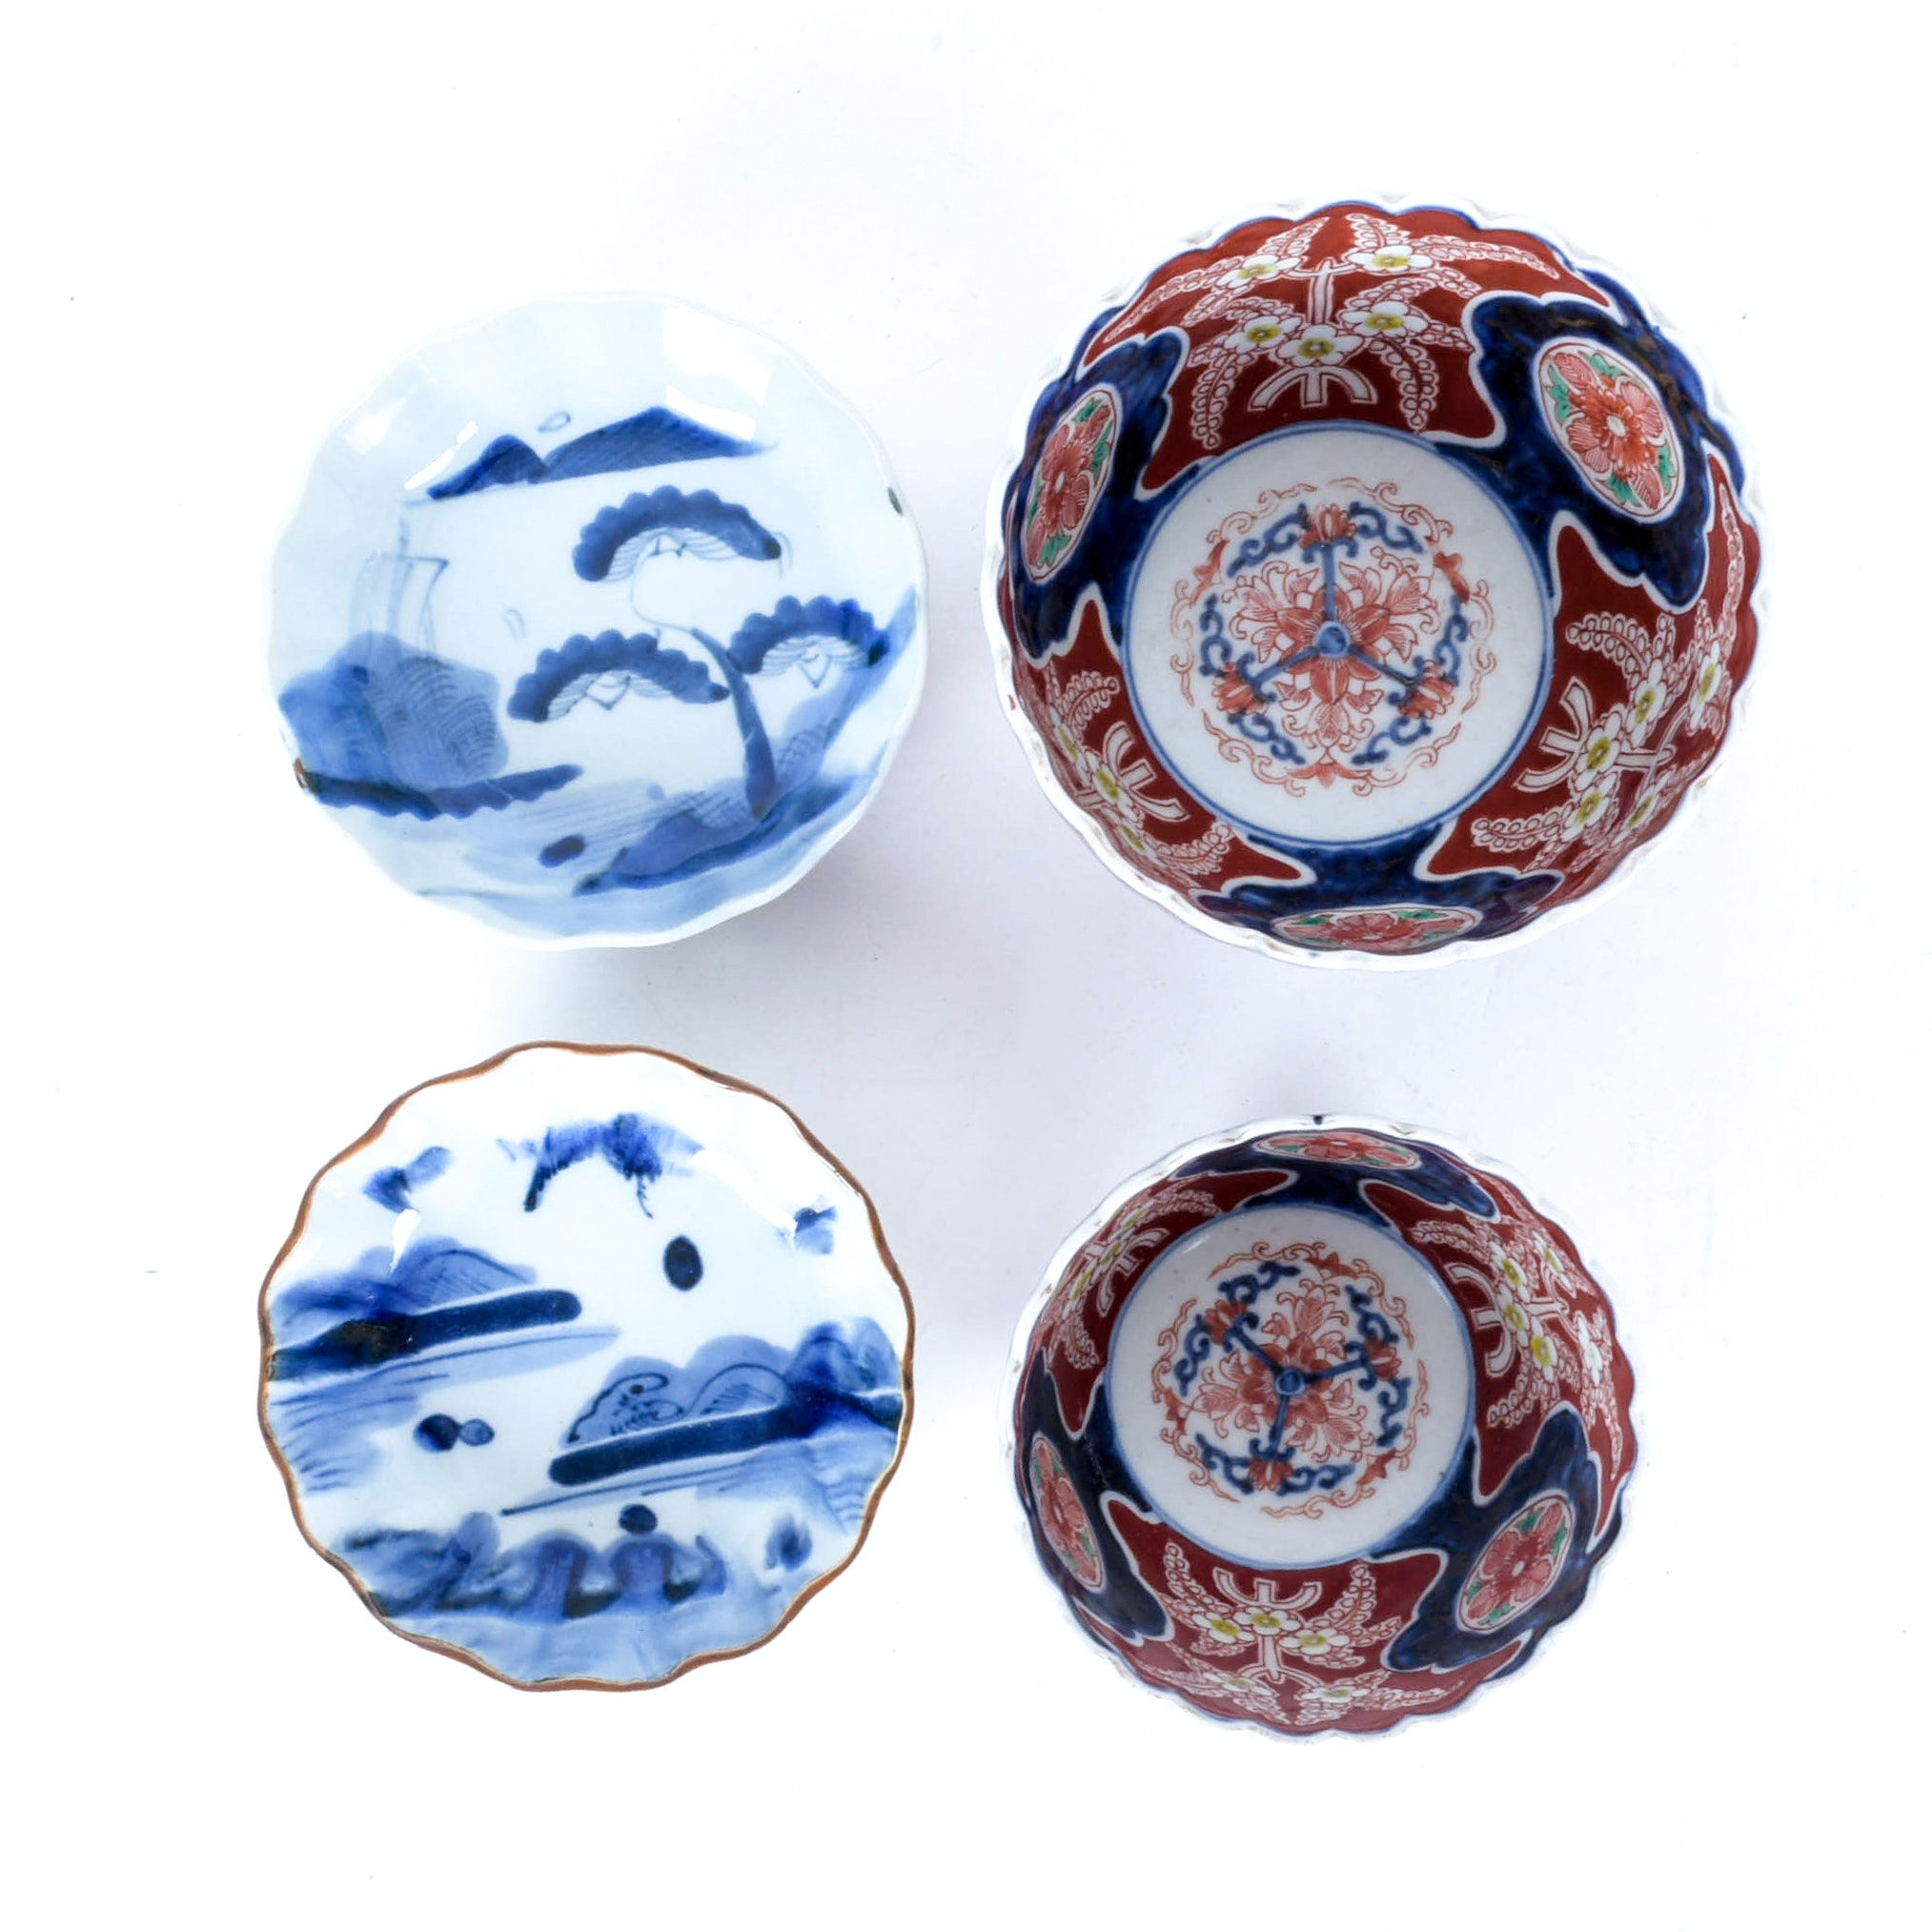 Collection of Vintage Japanese Imari Bowls